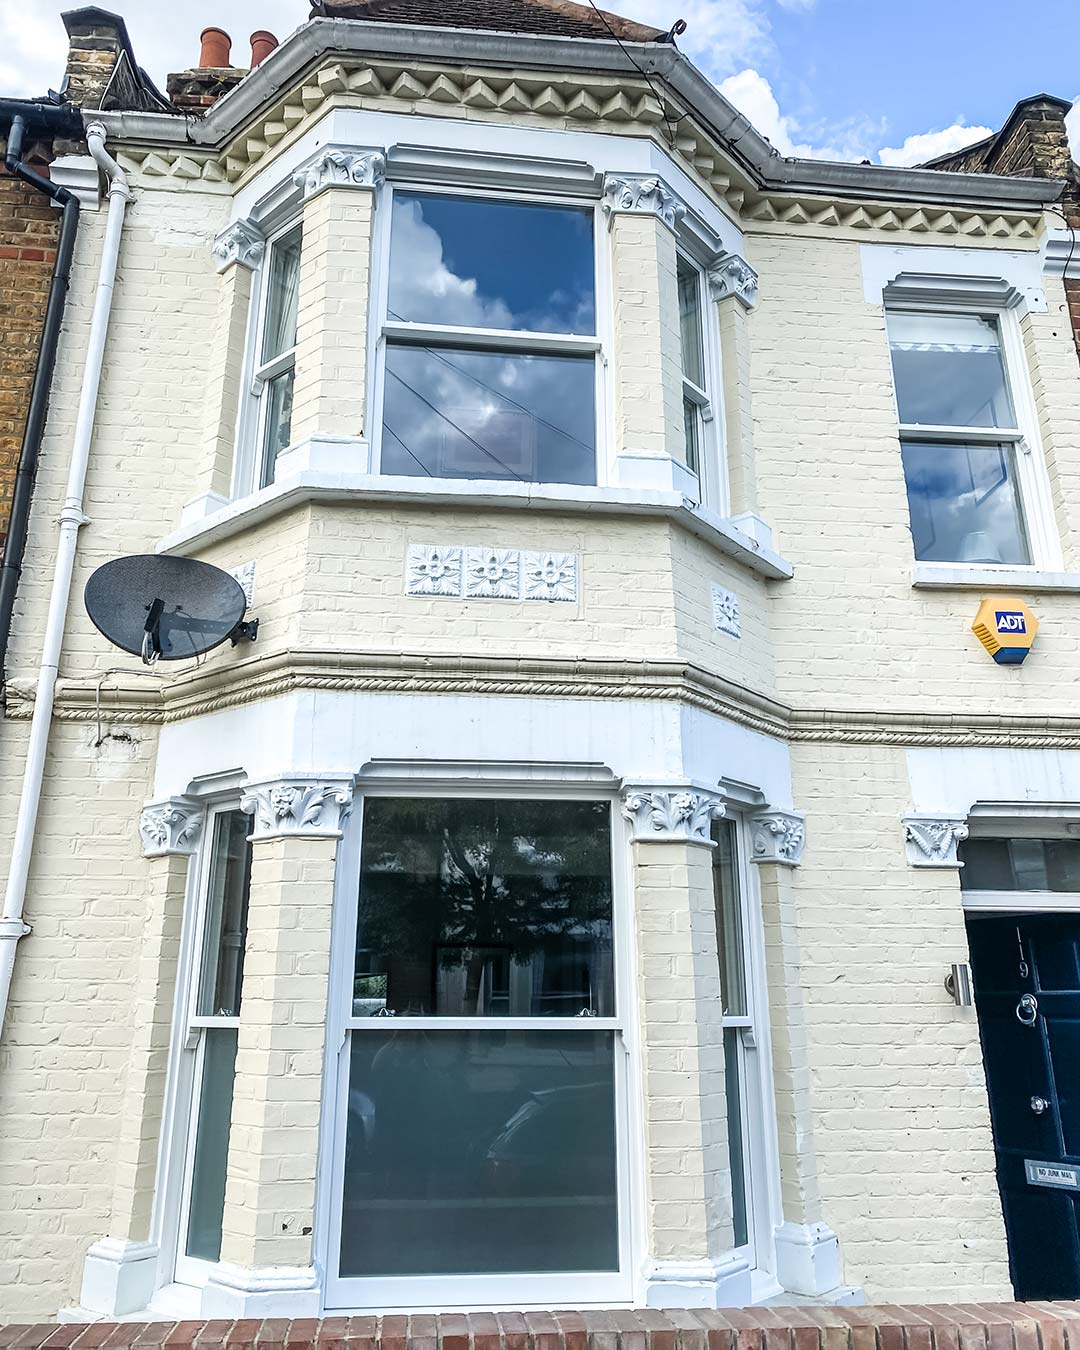 London home exterior with traditional timber sash windows